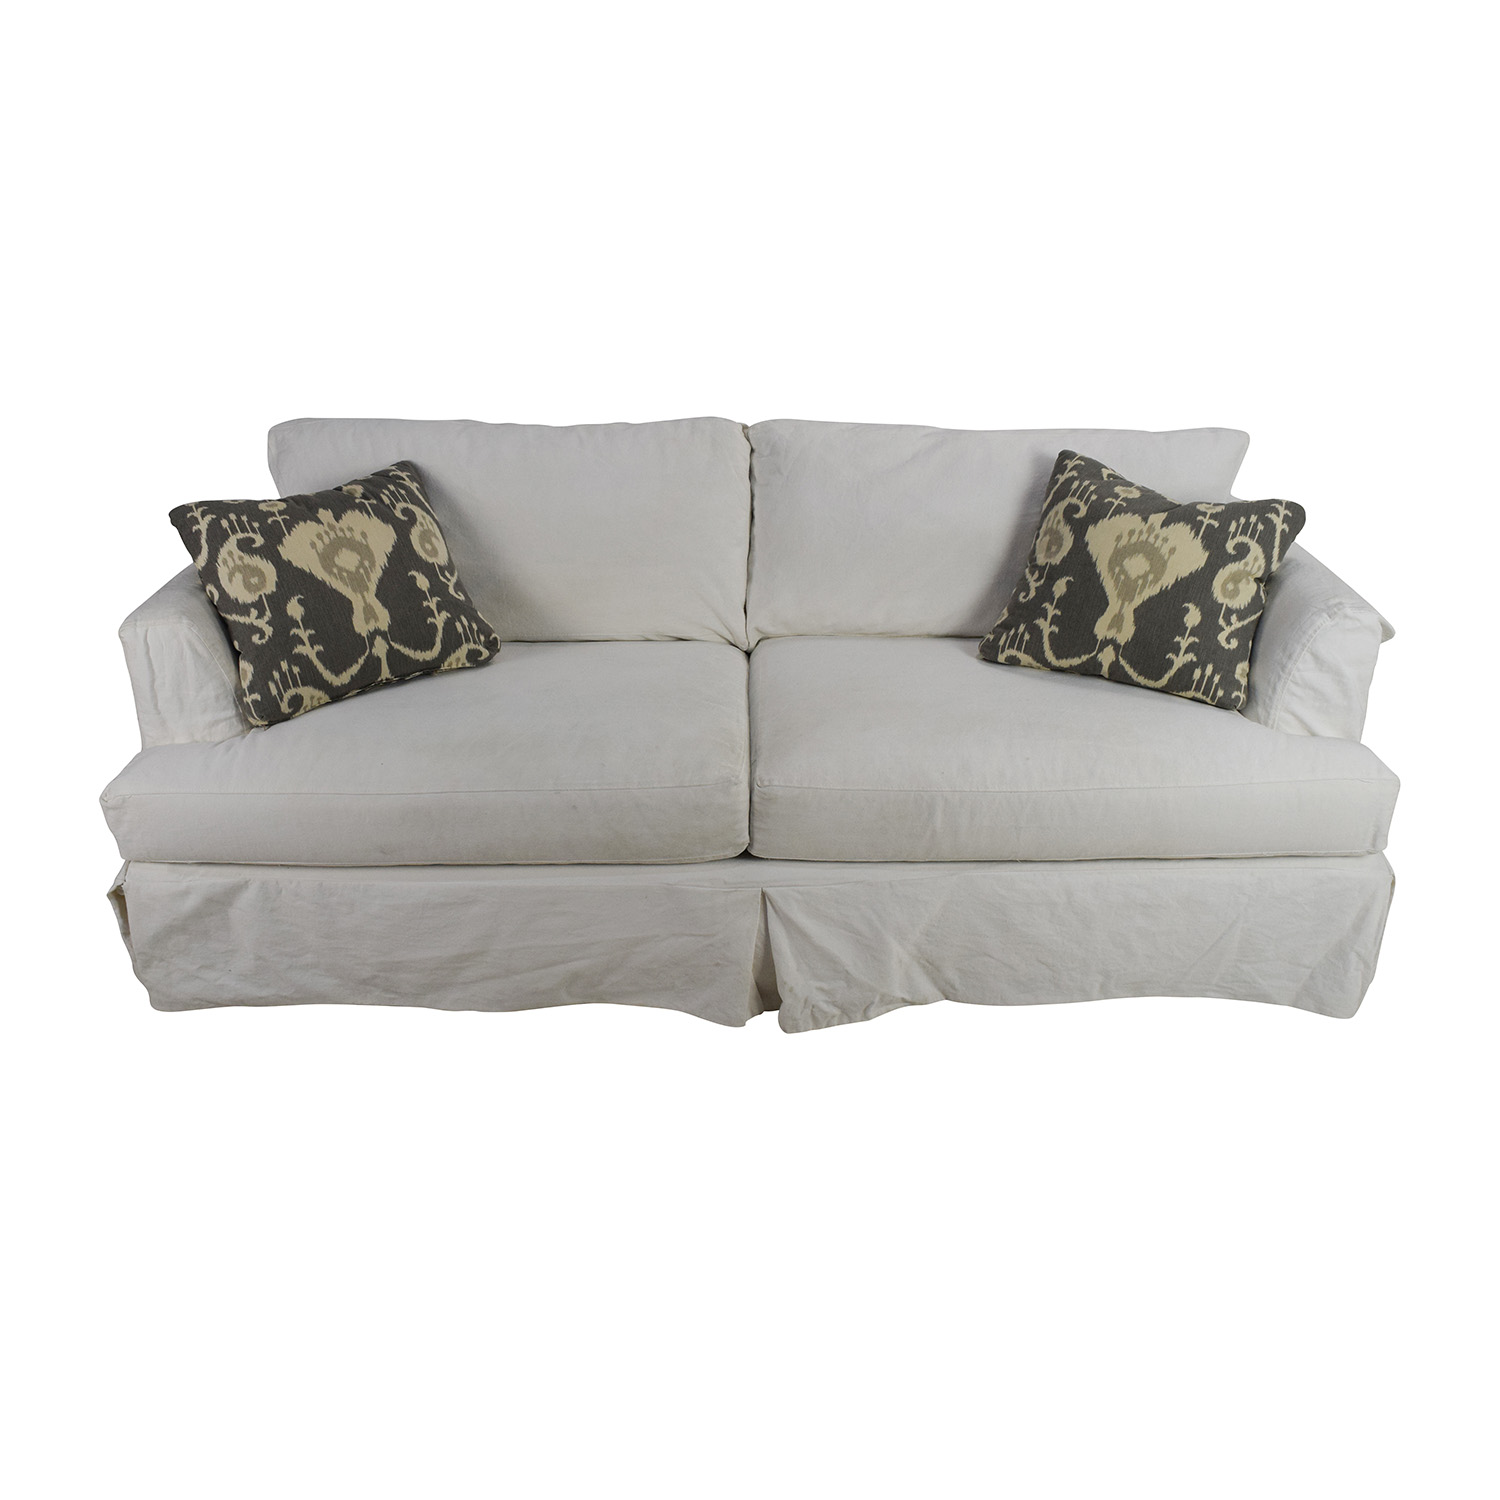 shop Jennifer Convertibles Jennifer Convertibles Melissa Slipcovered Sofa online